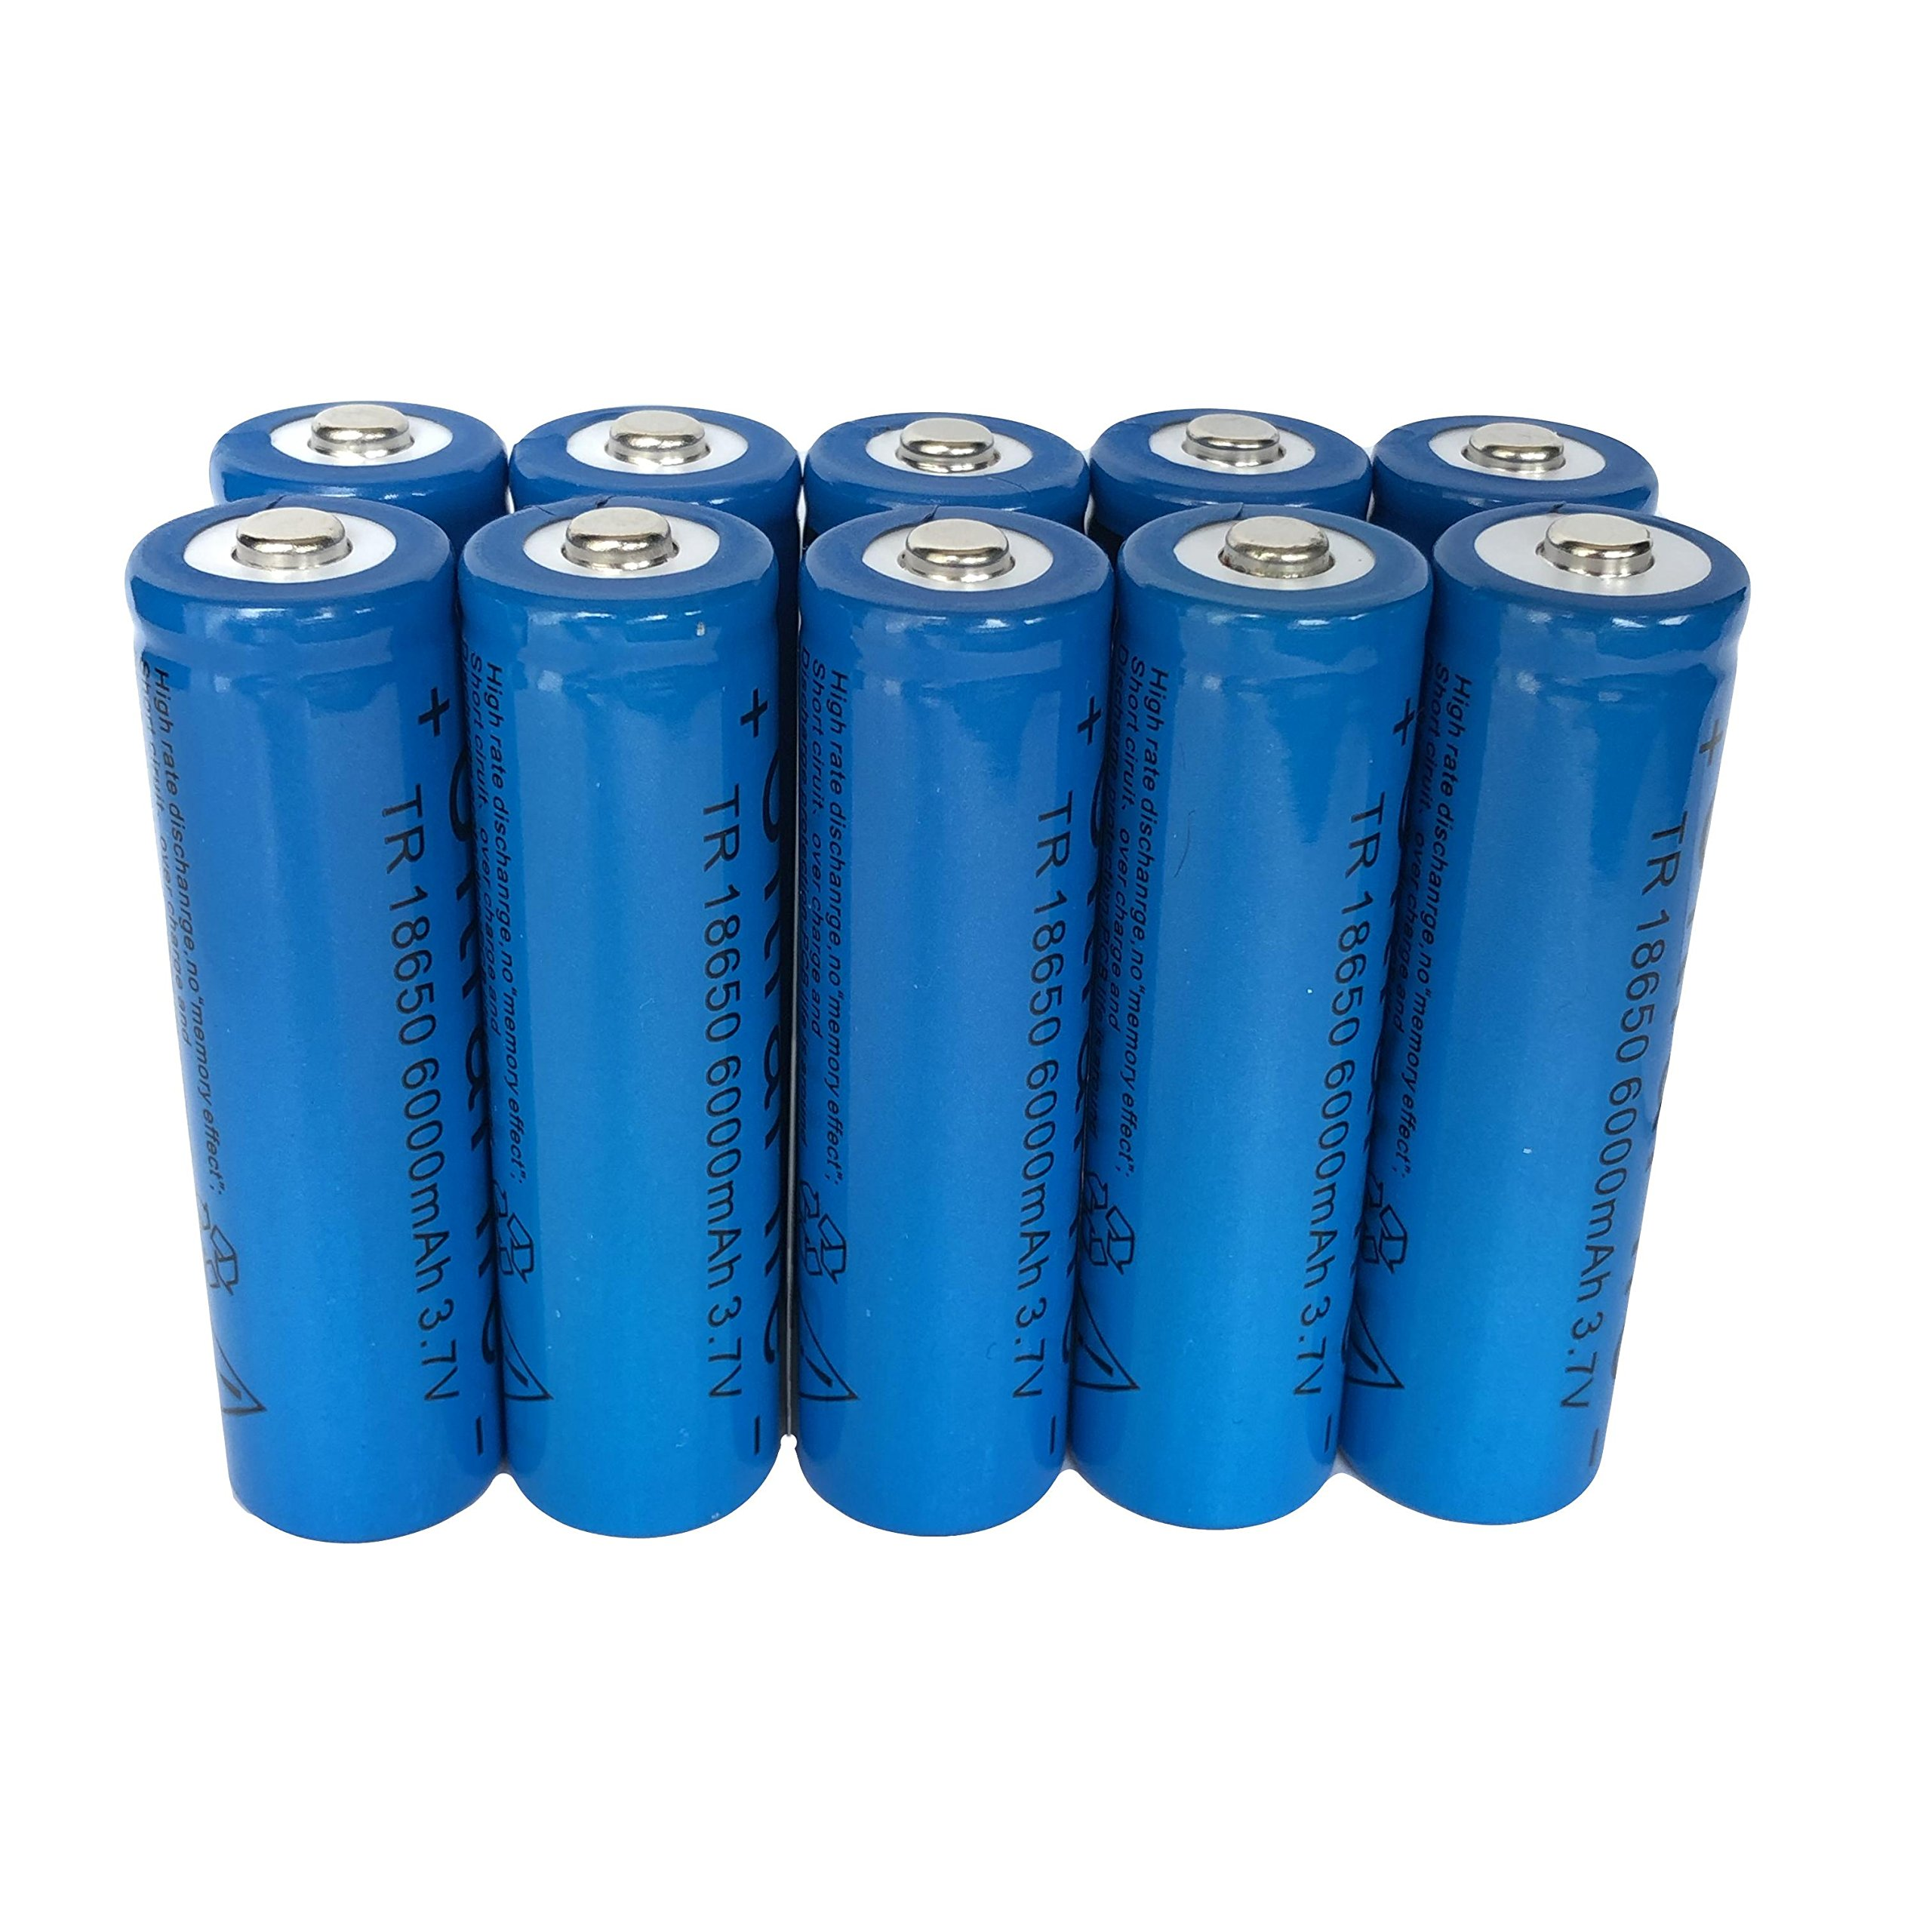 10 Pack 3.7v 18650 Li-ion Battery Rechargeable 6000mAh Lithium Button Top Batteries Applicable for LED Flashlight Ship from USA